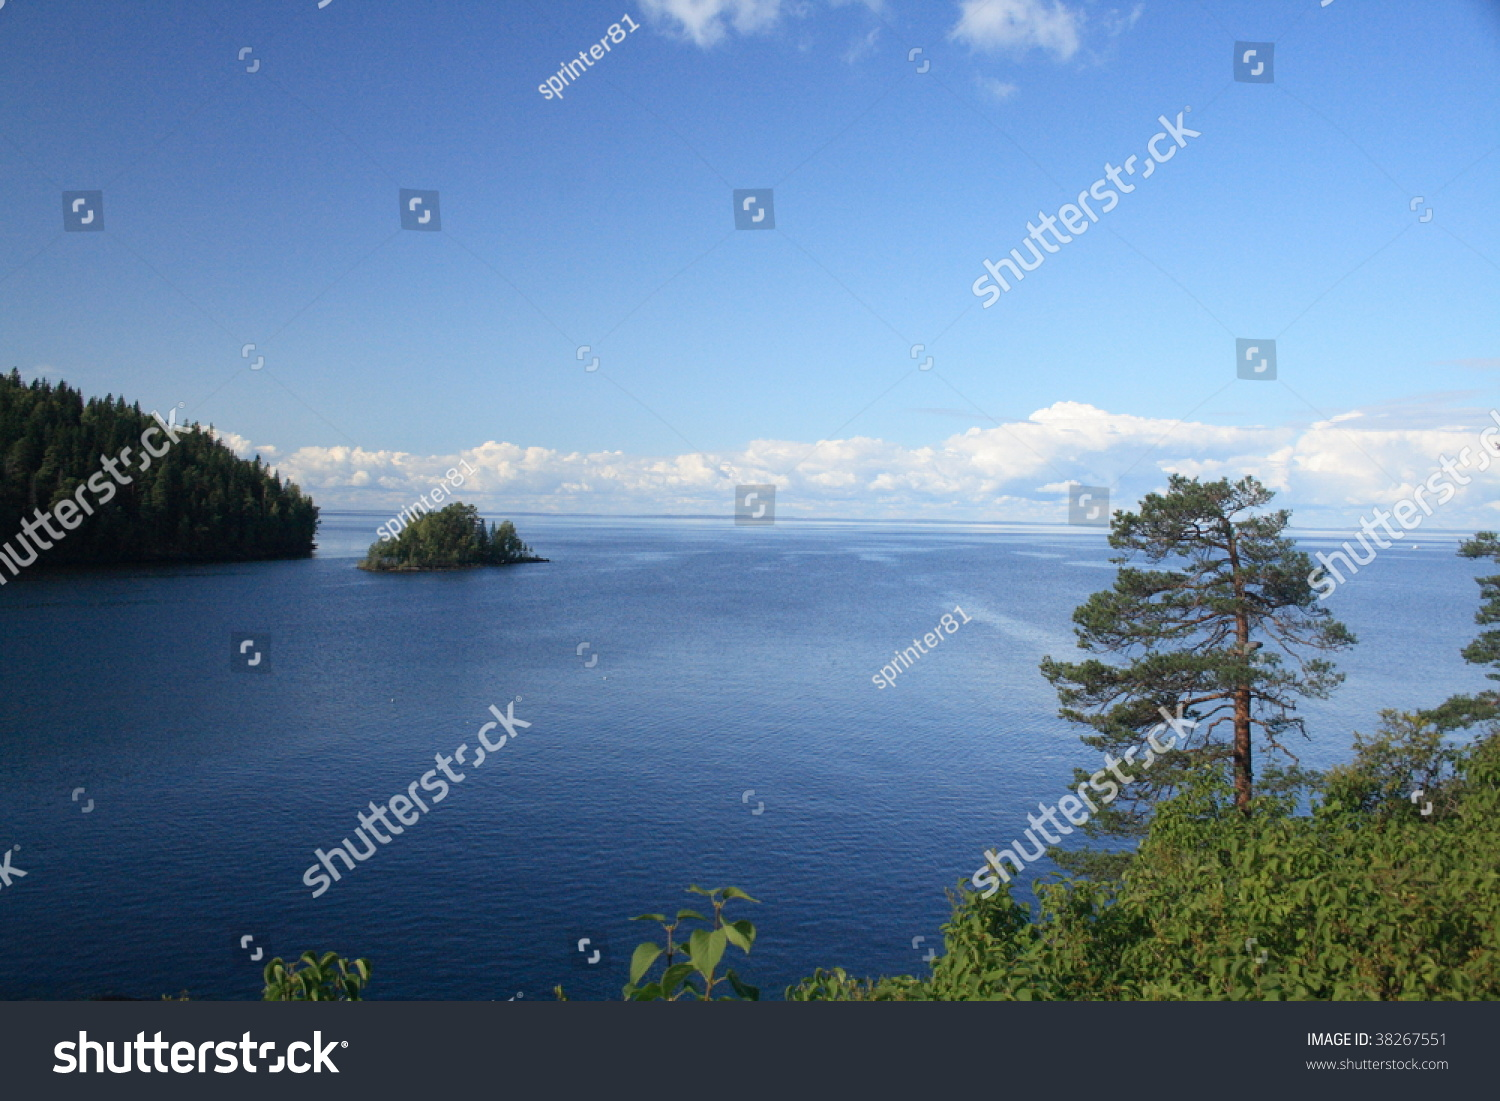 The biggest lake in europe